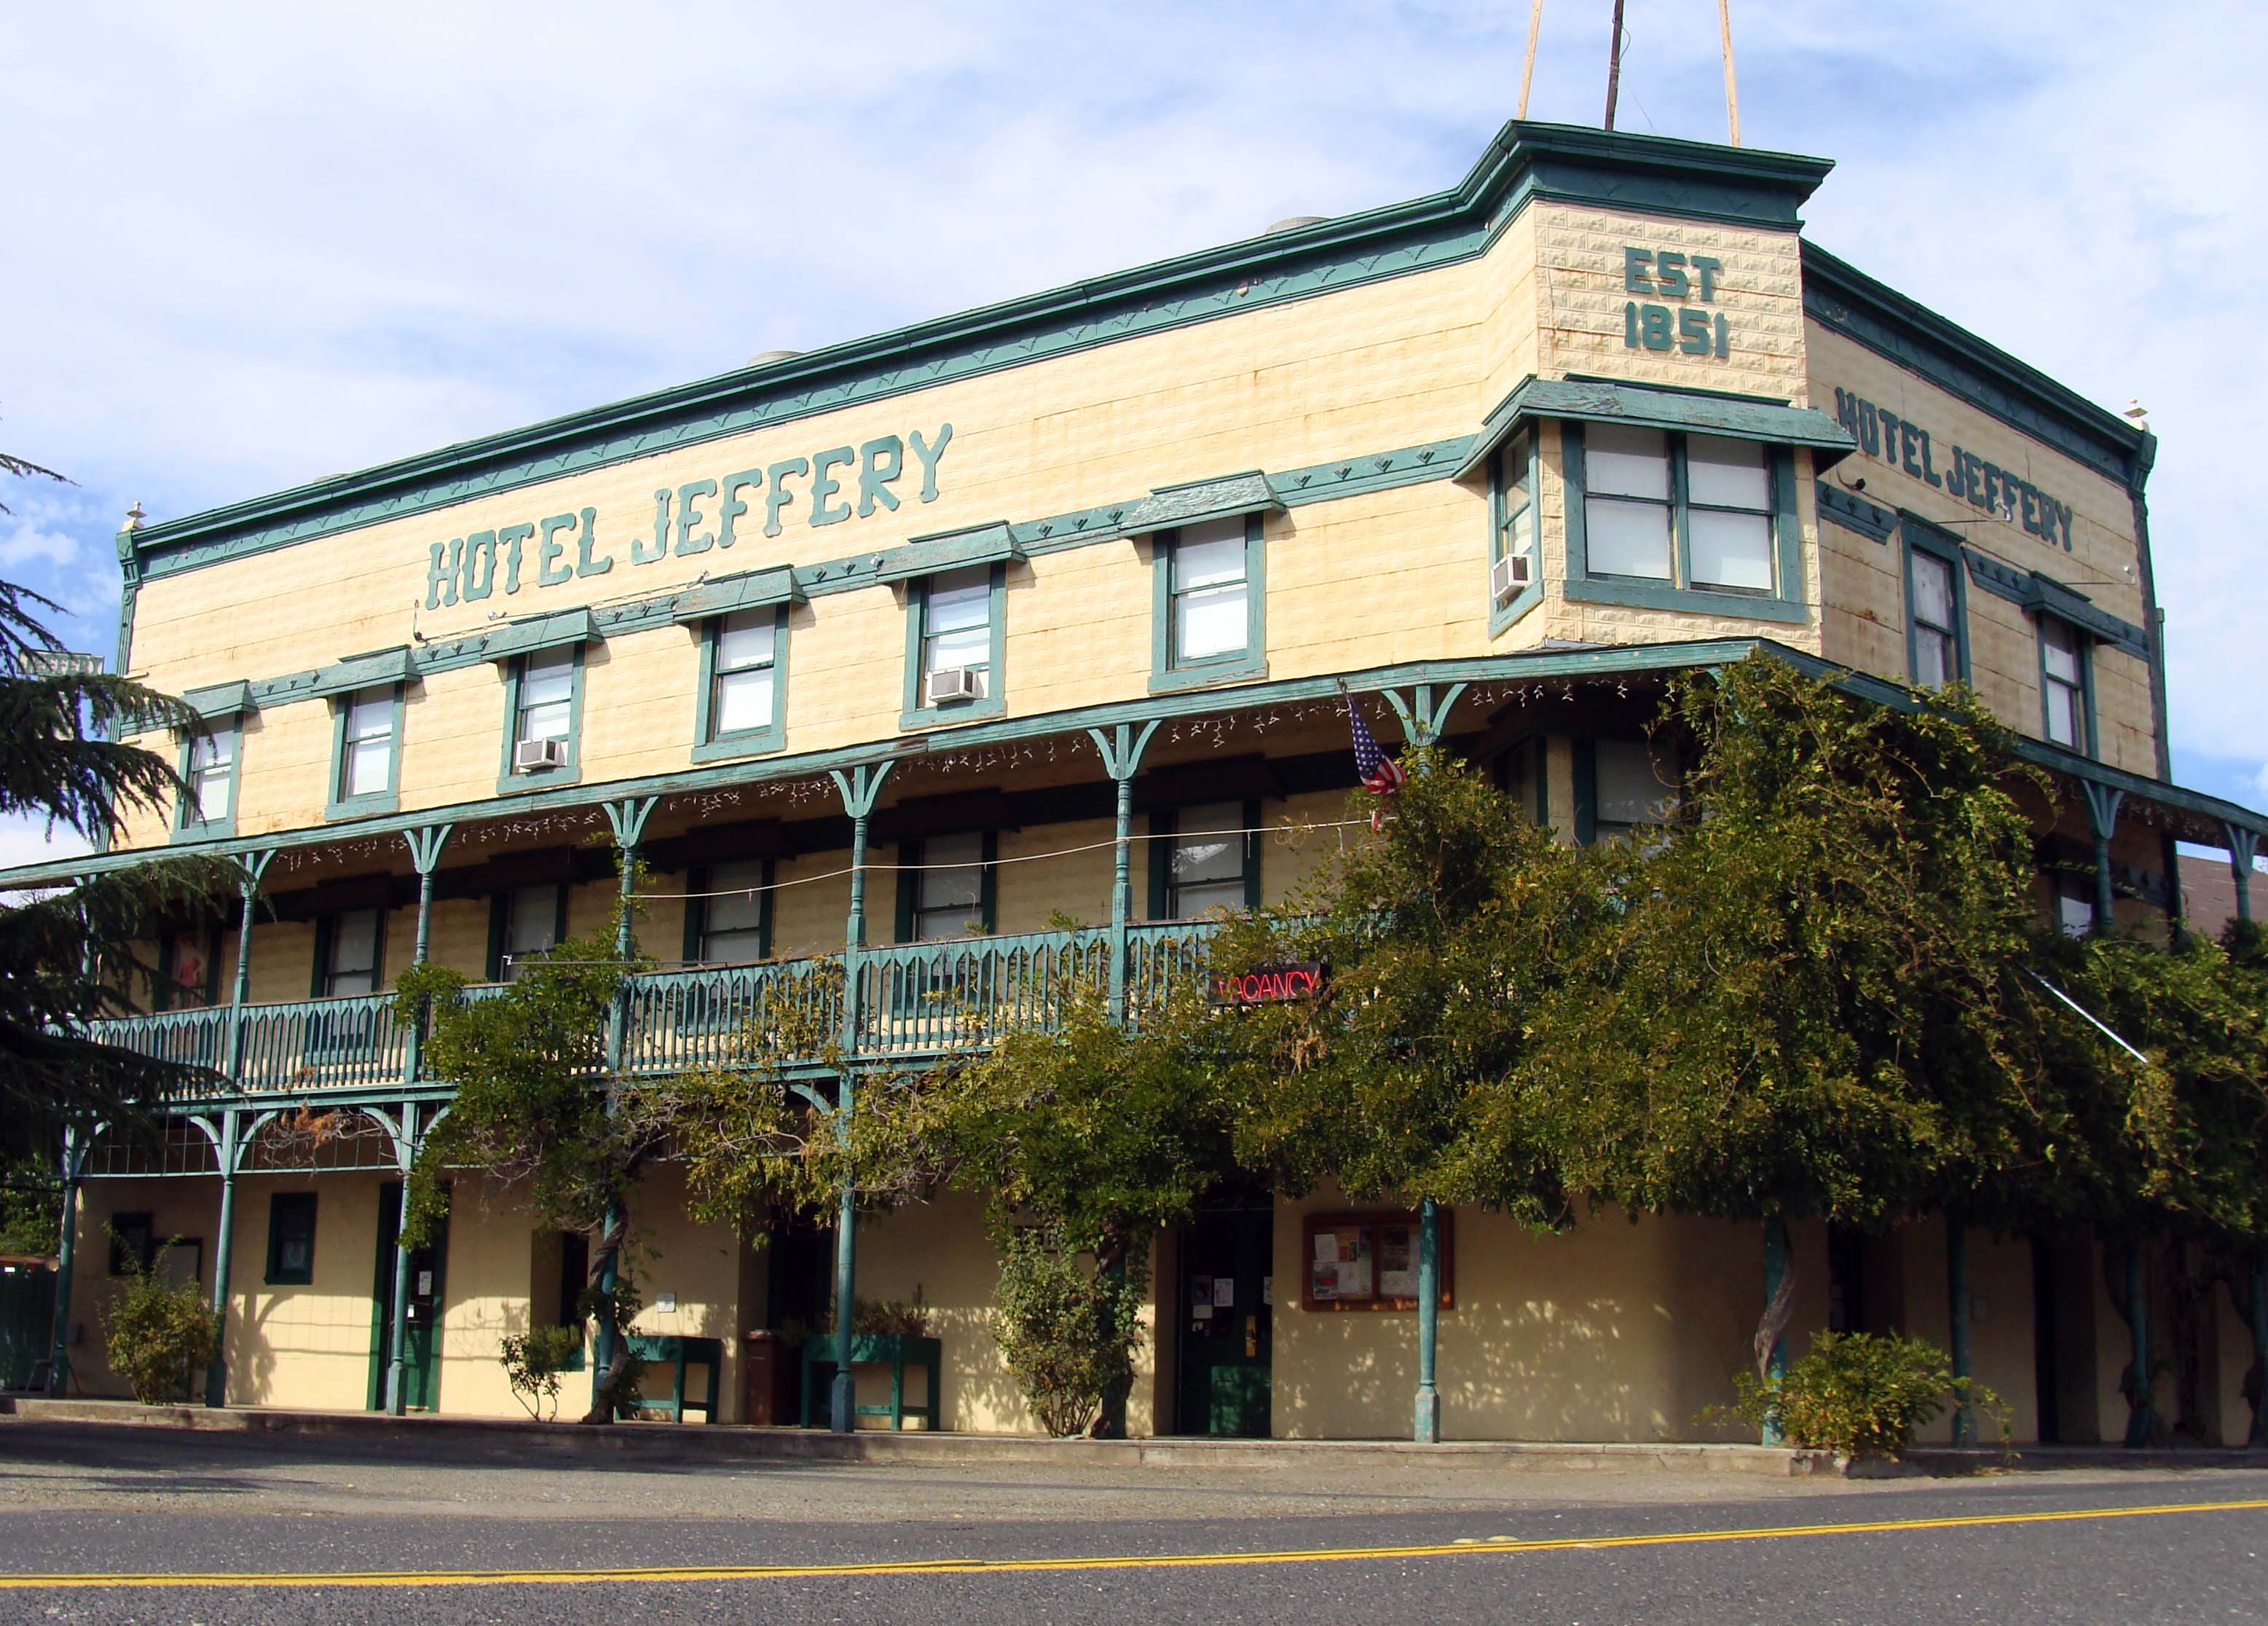 coulterville hotel jeffery